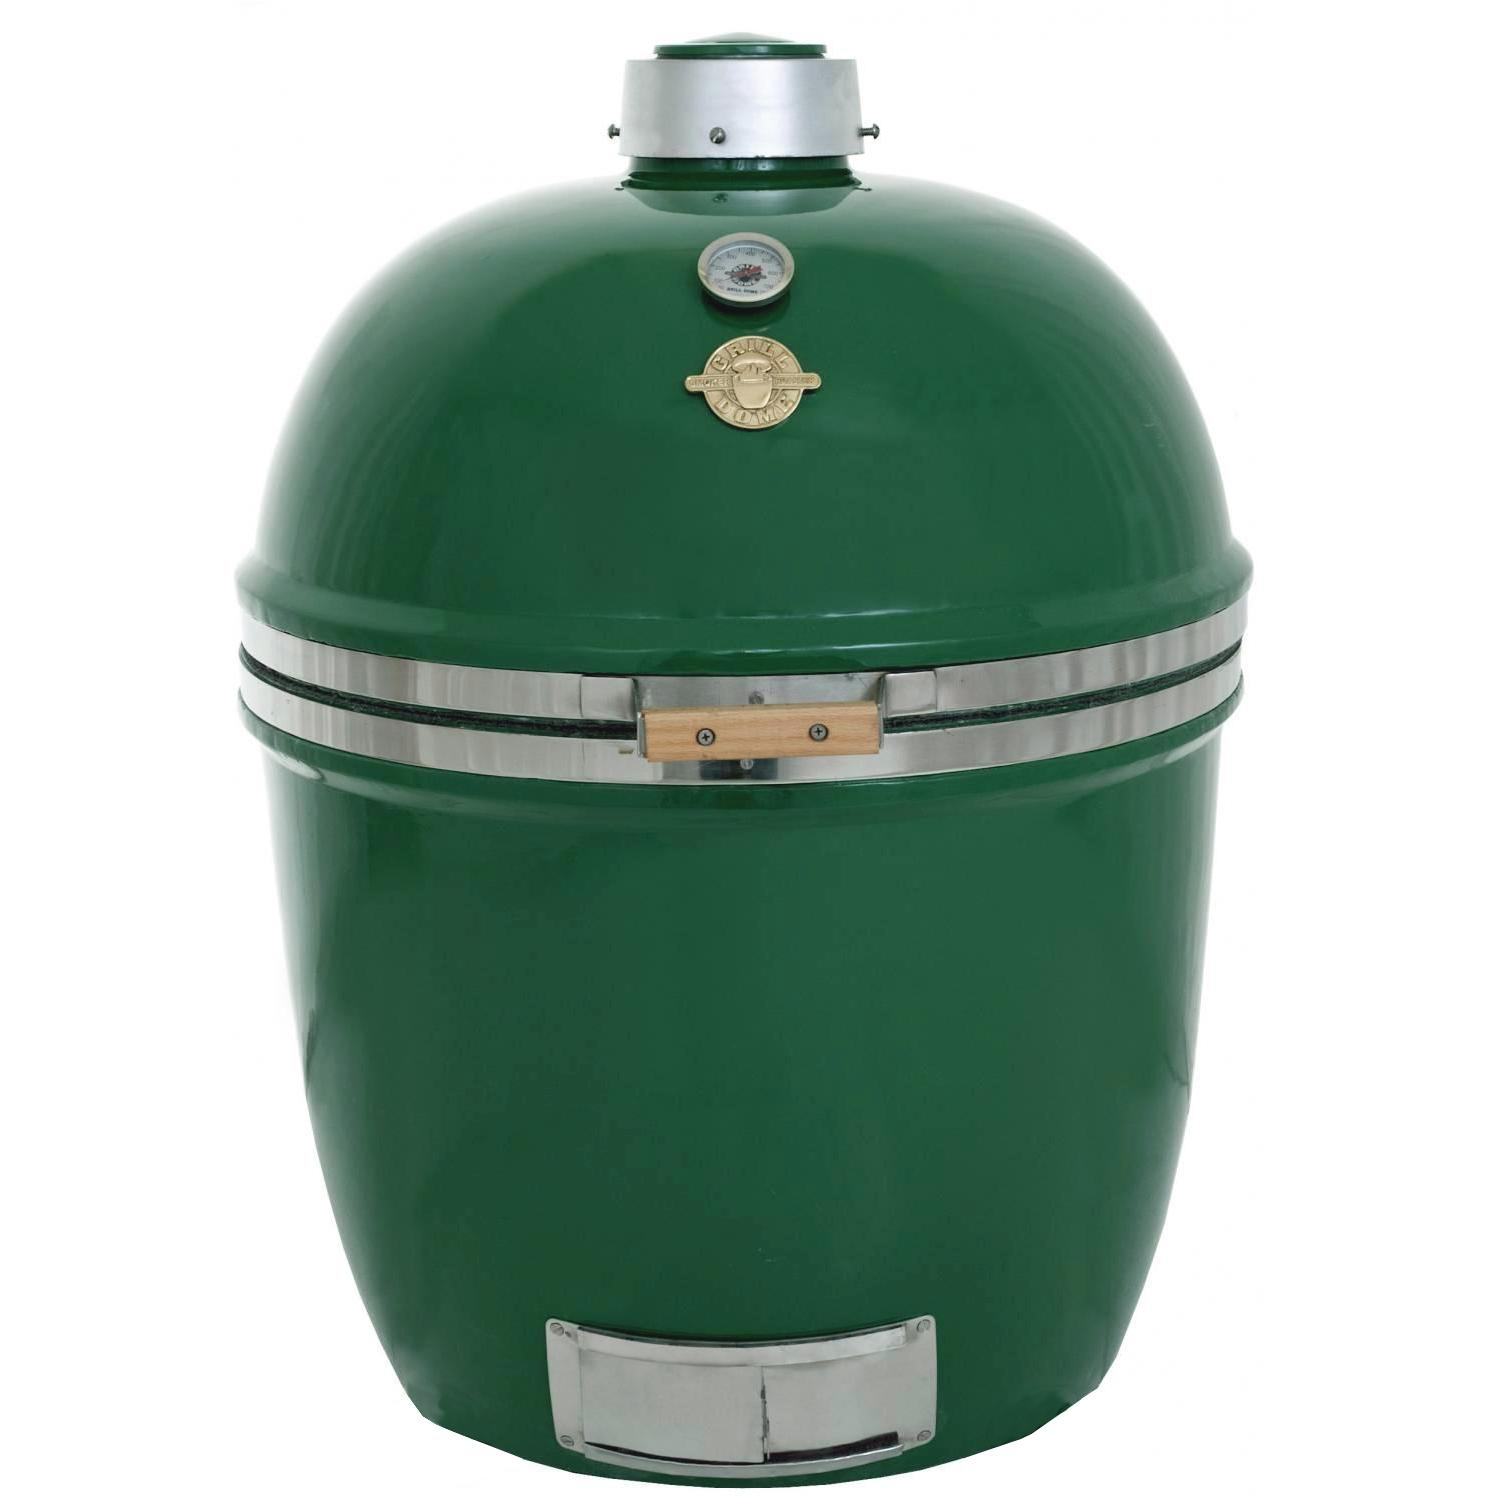 Grill Dome Infinity Series XL Kamado Grill - Green, Discount ID GDXL-GR